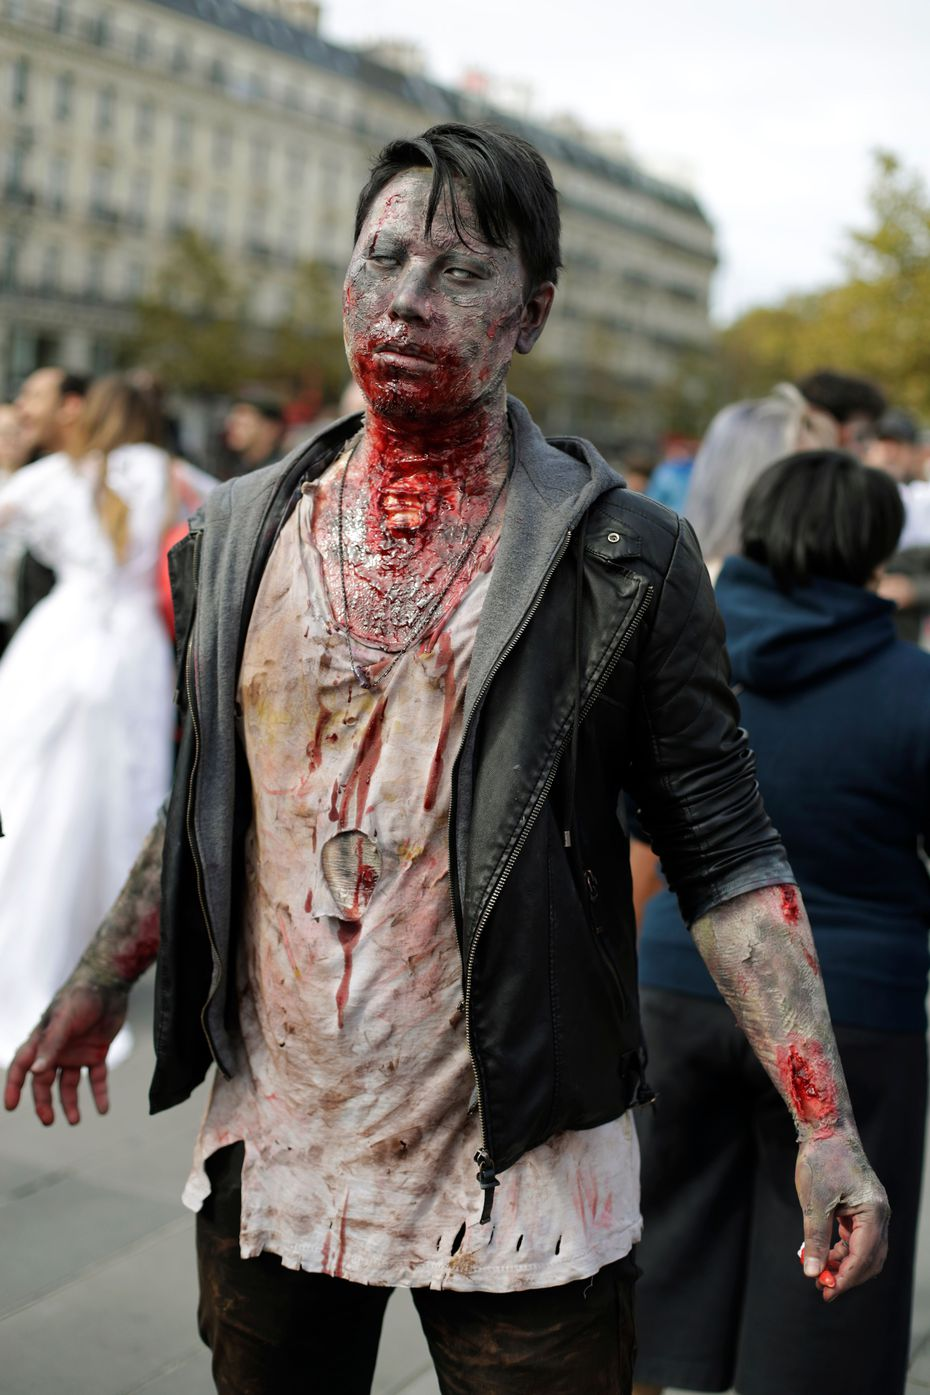 """Do as this undead dude did -- use stage makeup and tattered clothes to fully zombify yourself to terrifying lengths for the Zombie Pub Crawl in Deep Ellum."""""""